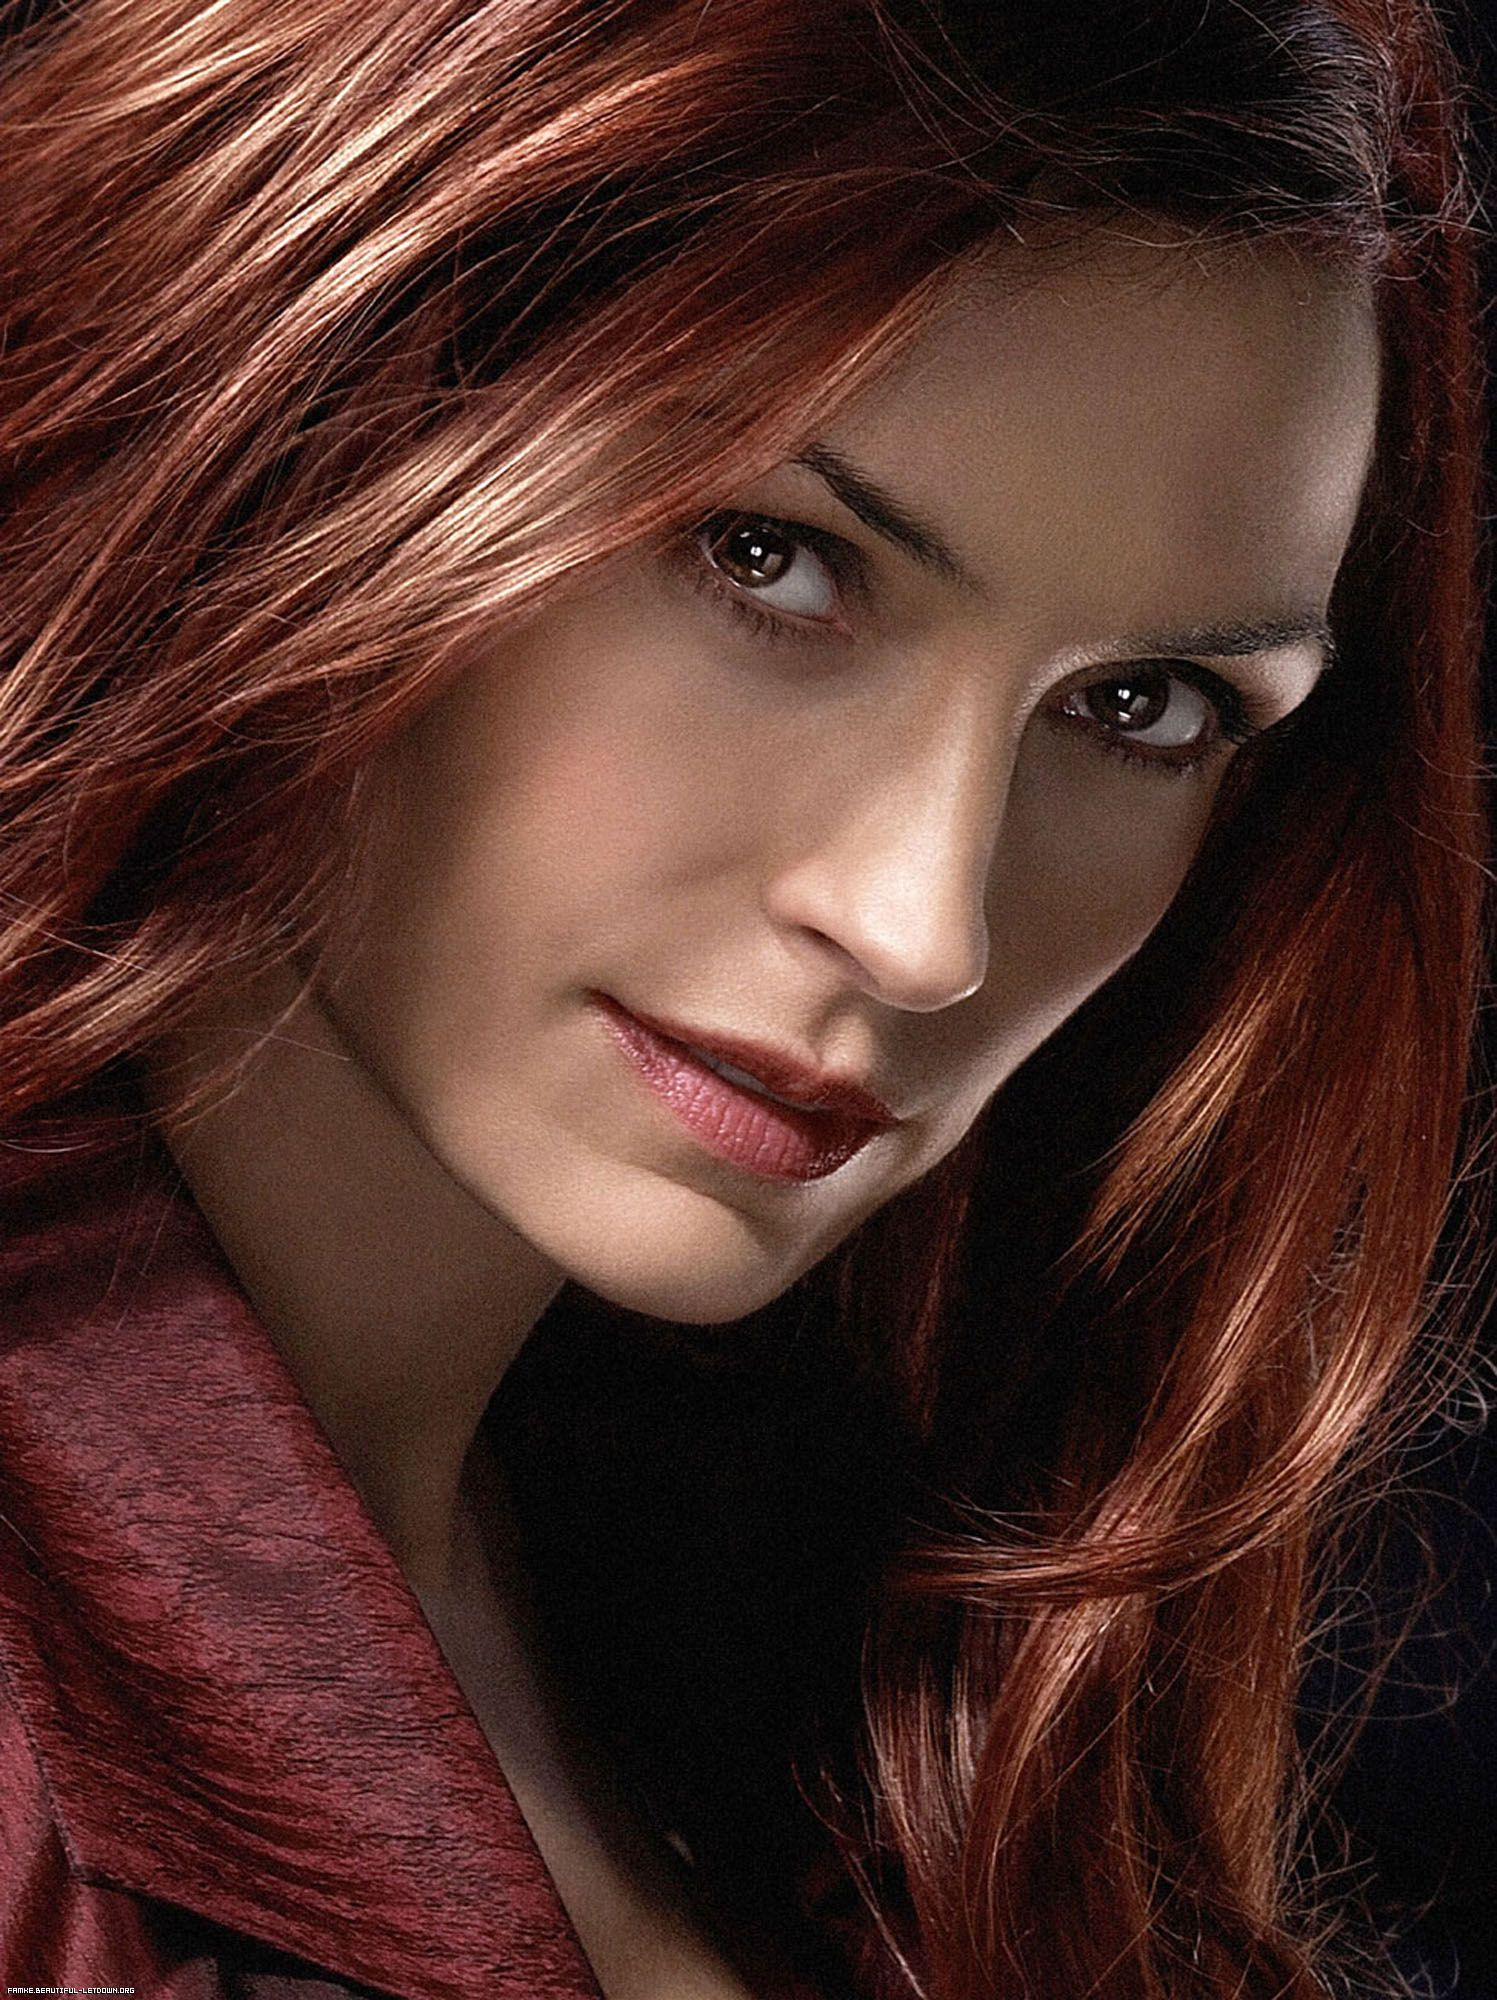 Jean Grey Cinematic Universe Famke Janssen Famke Janssen X Men Jean Grey